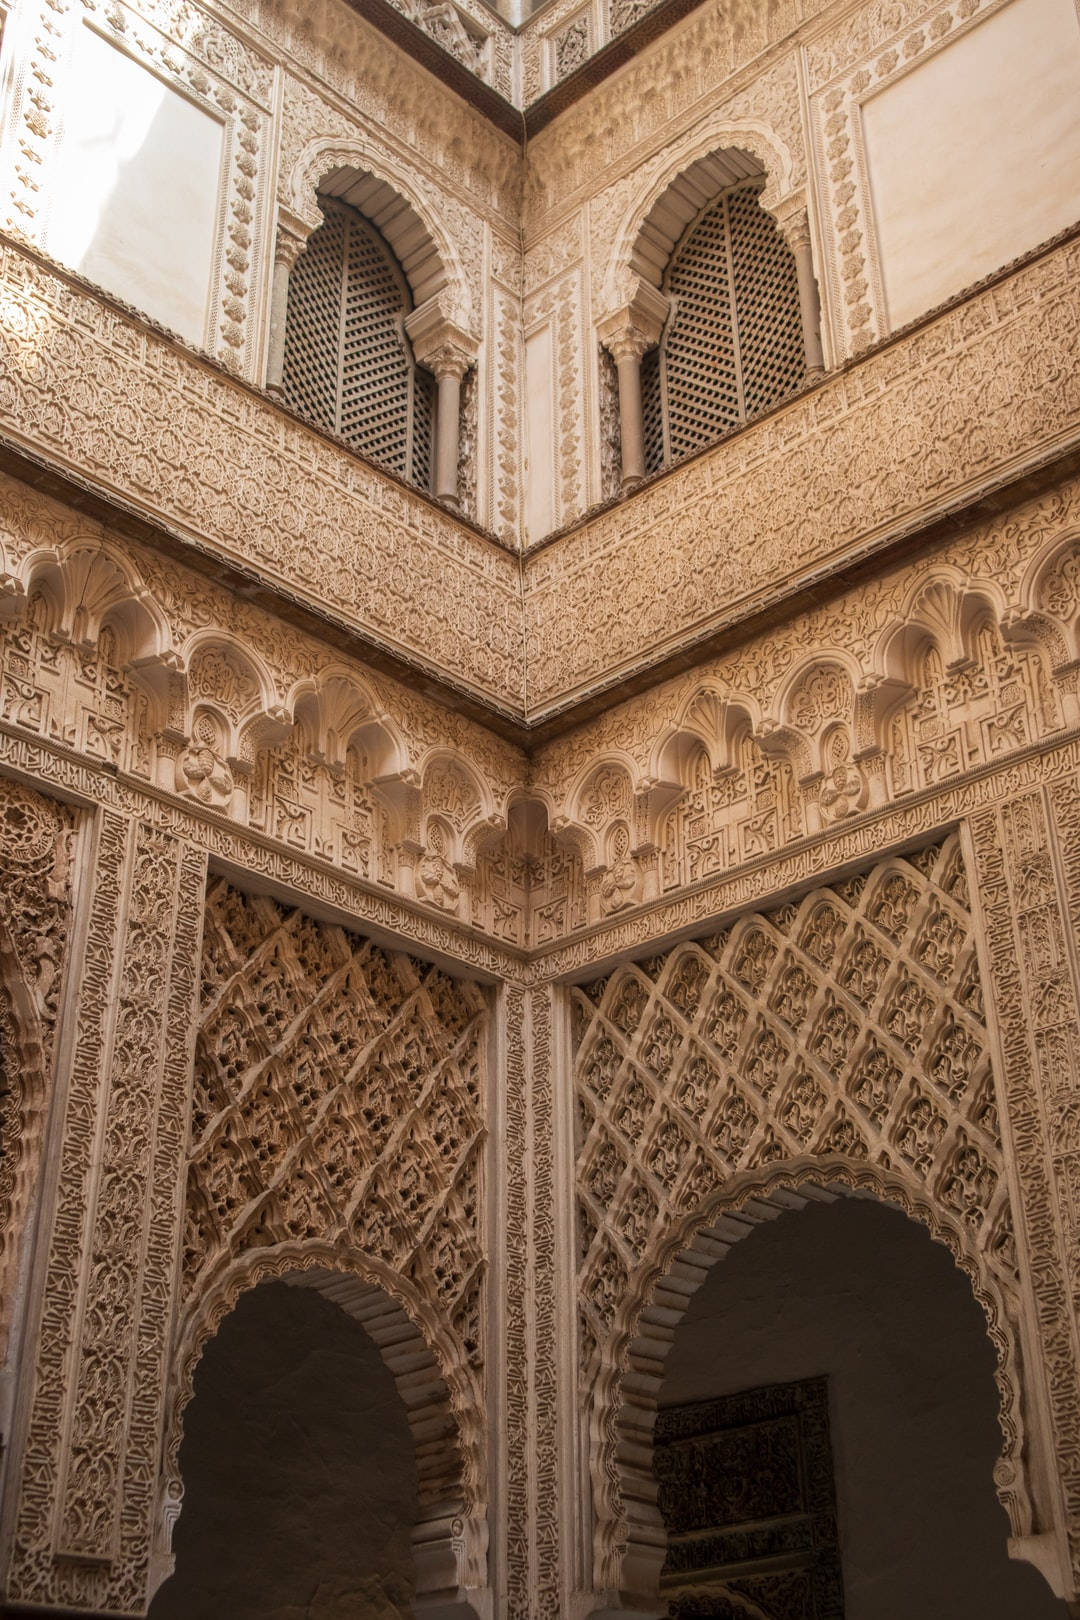 Amazing Moorish style architecture from the 15th century.